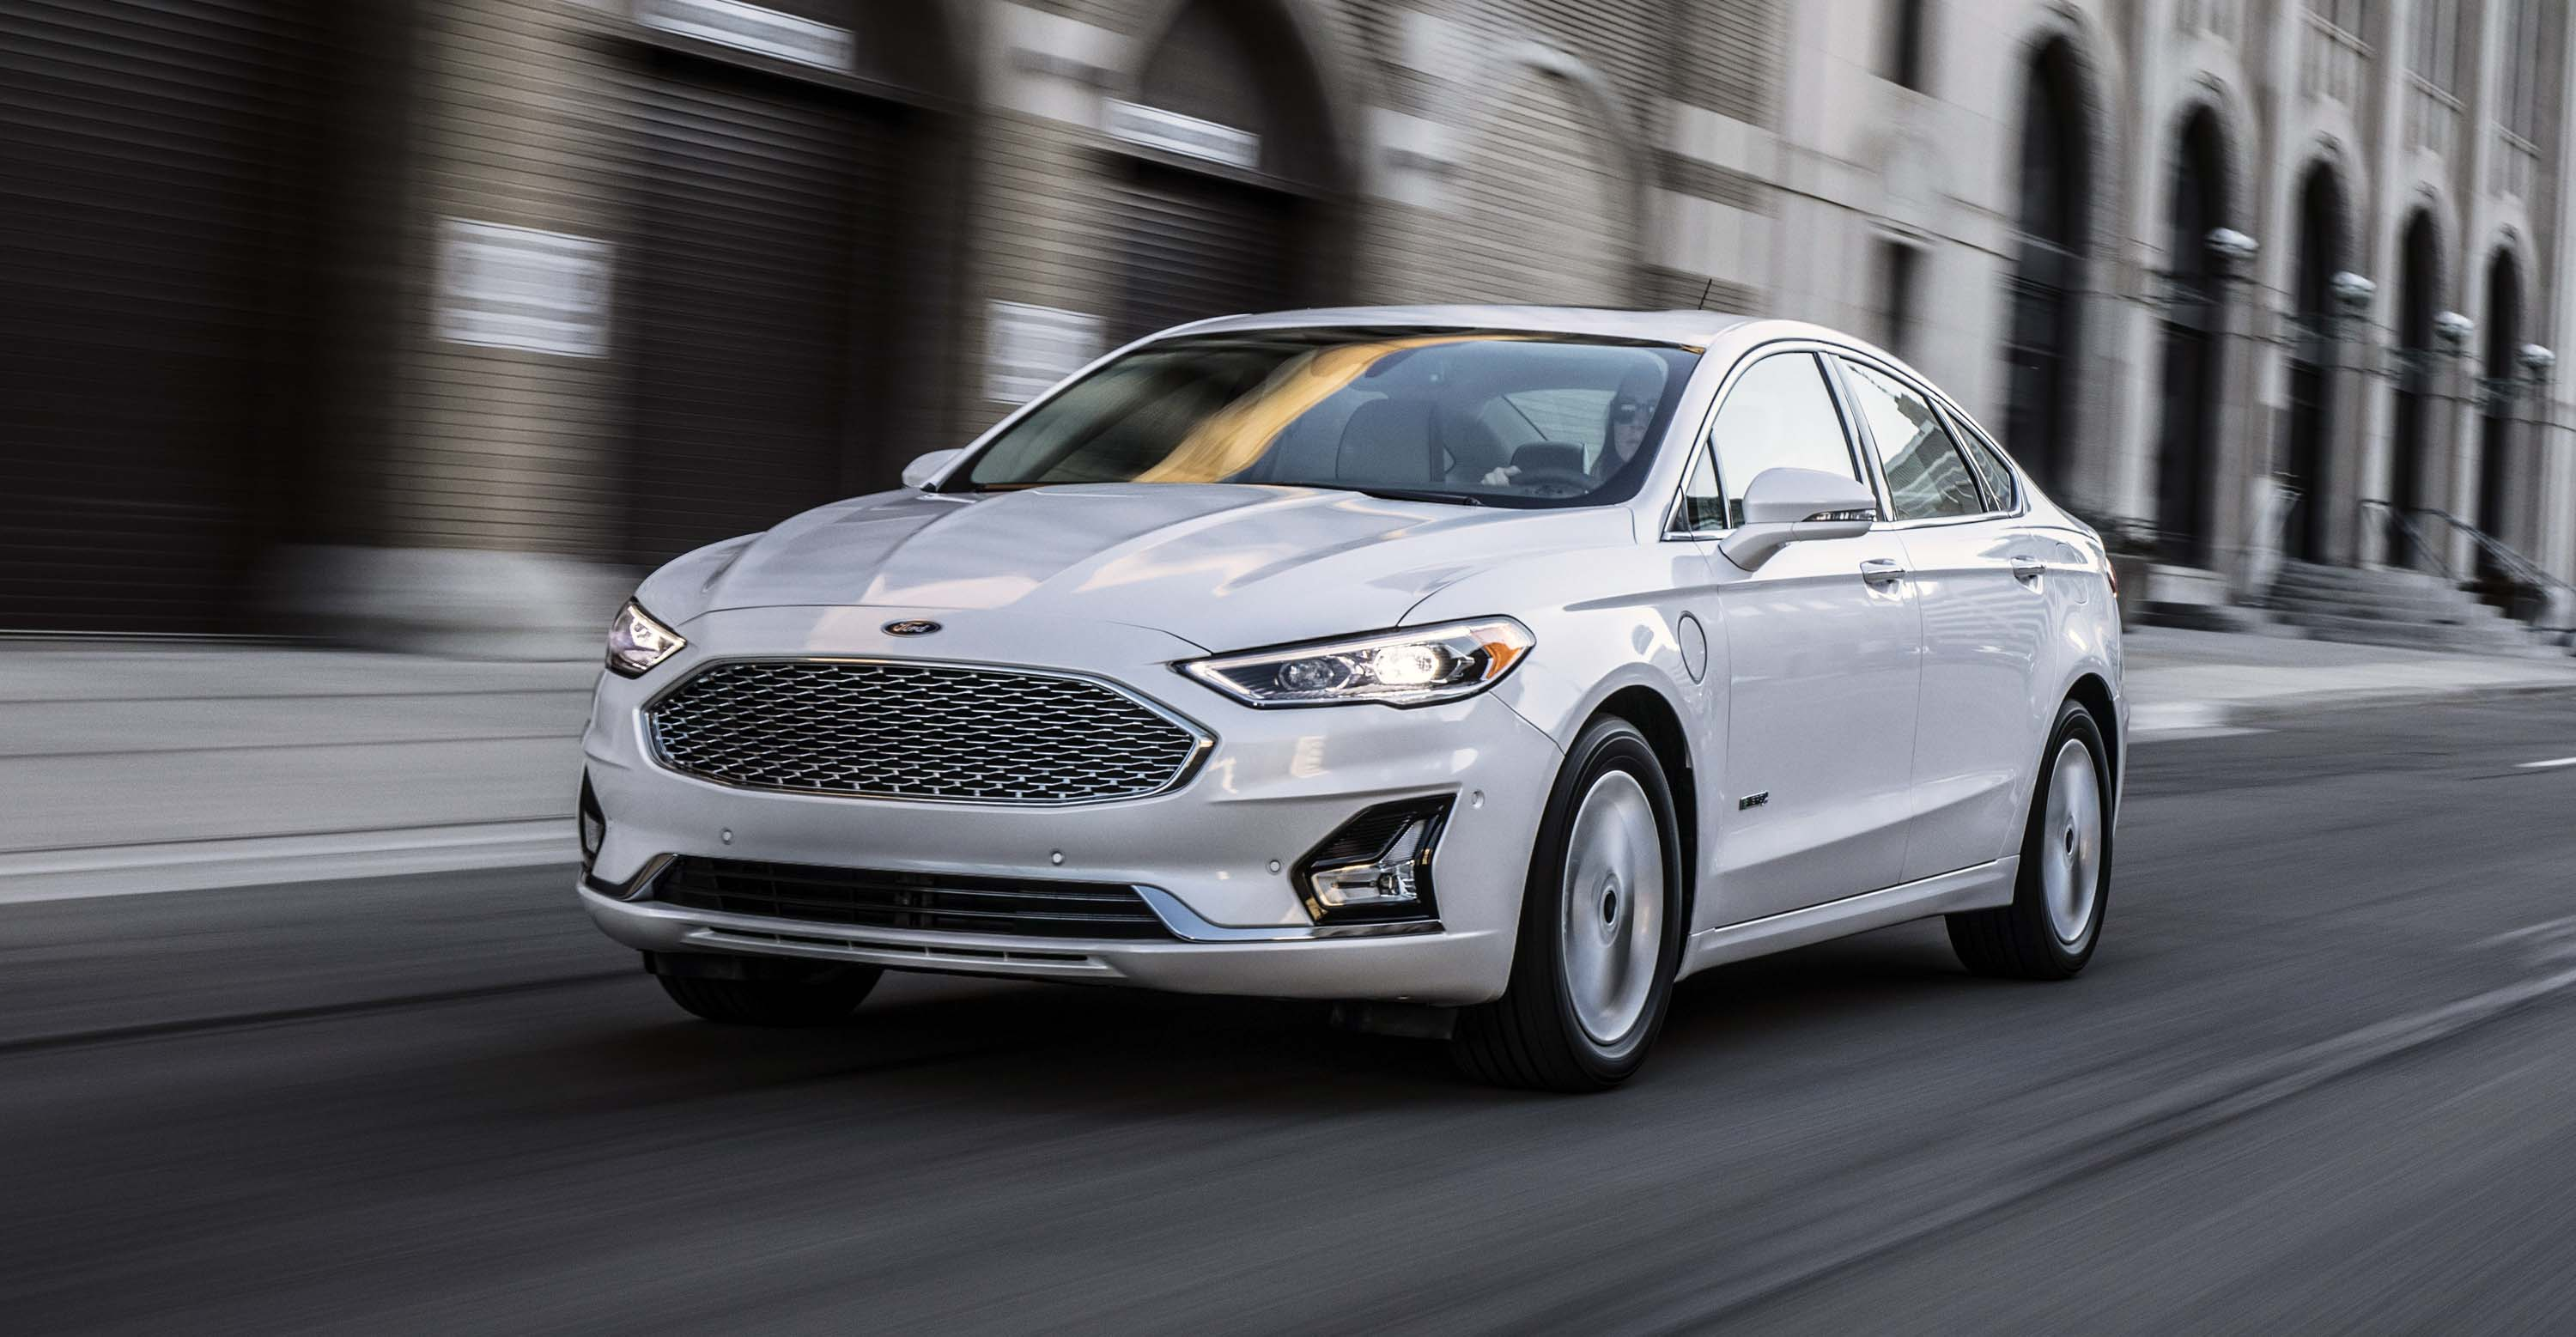 9 Ford Fusion Review, Ratings, Specs, Prices, and Photos - The